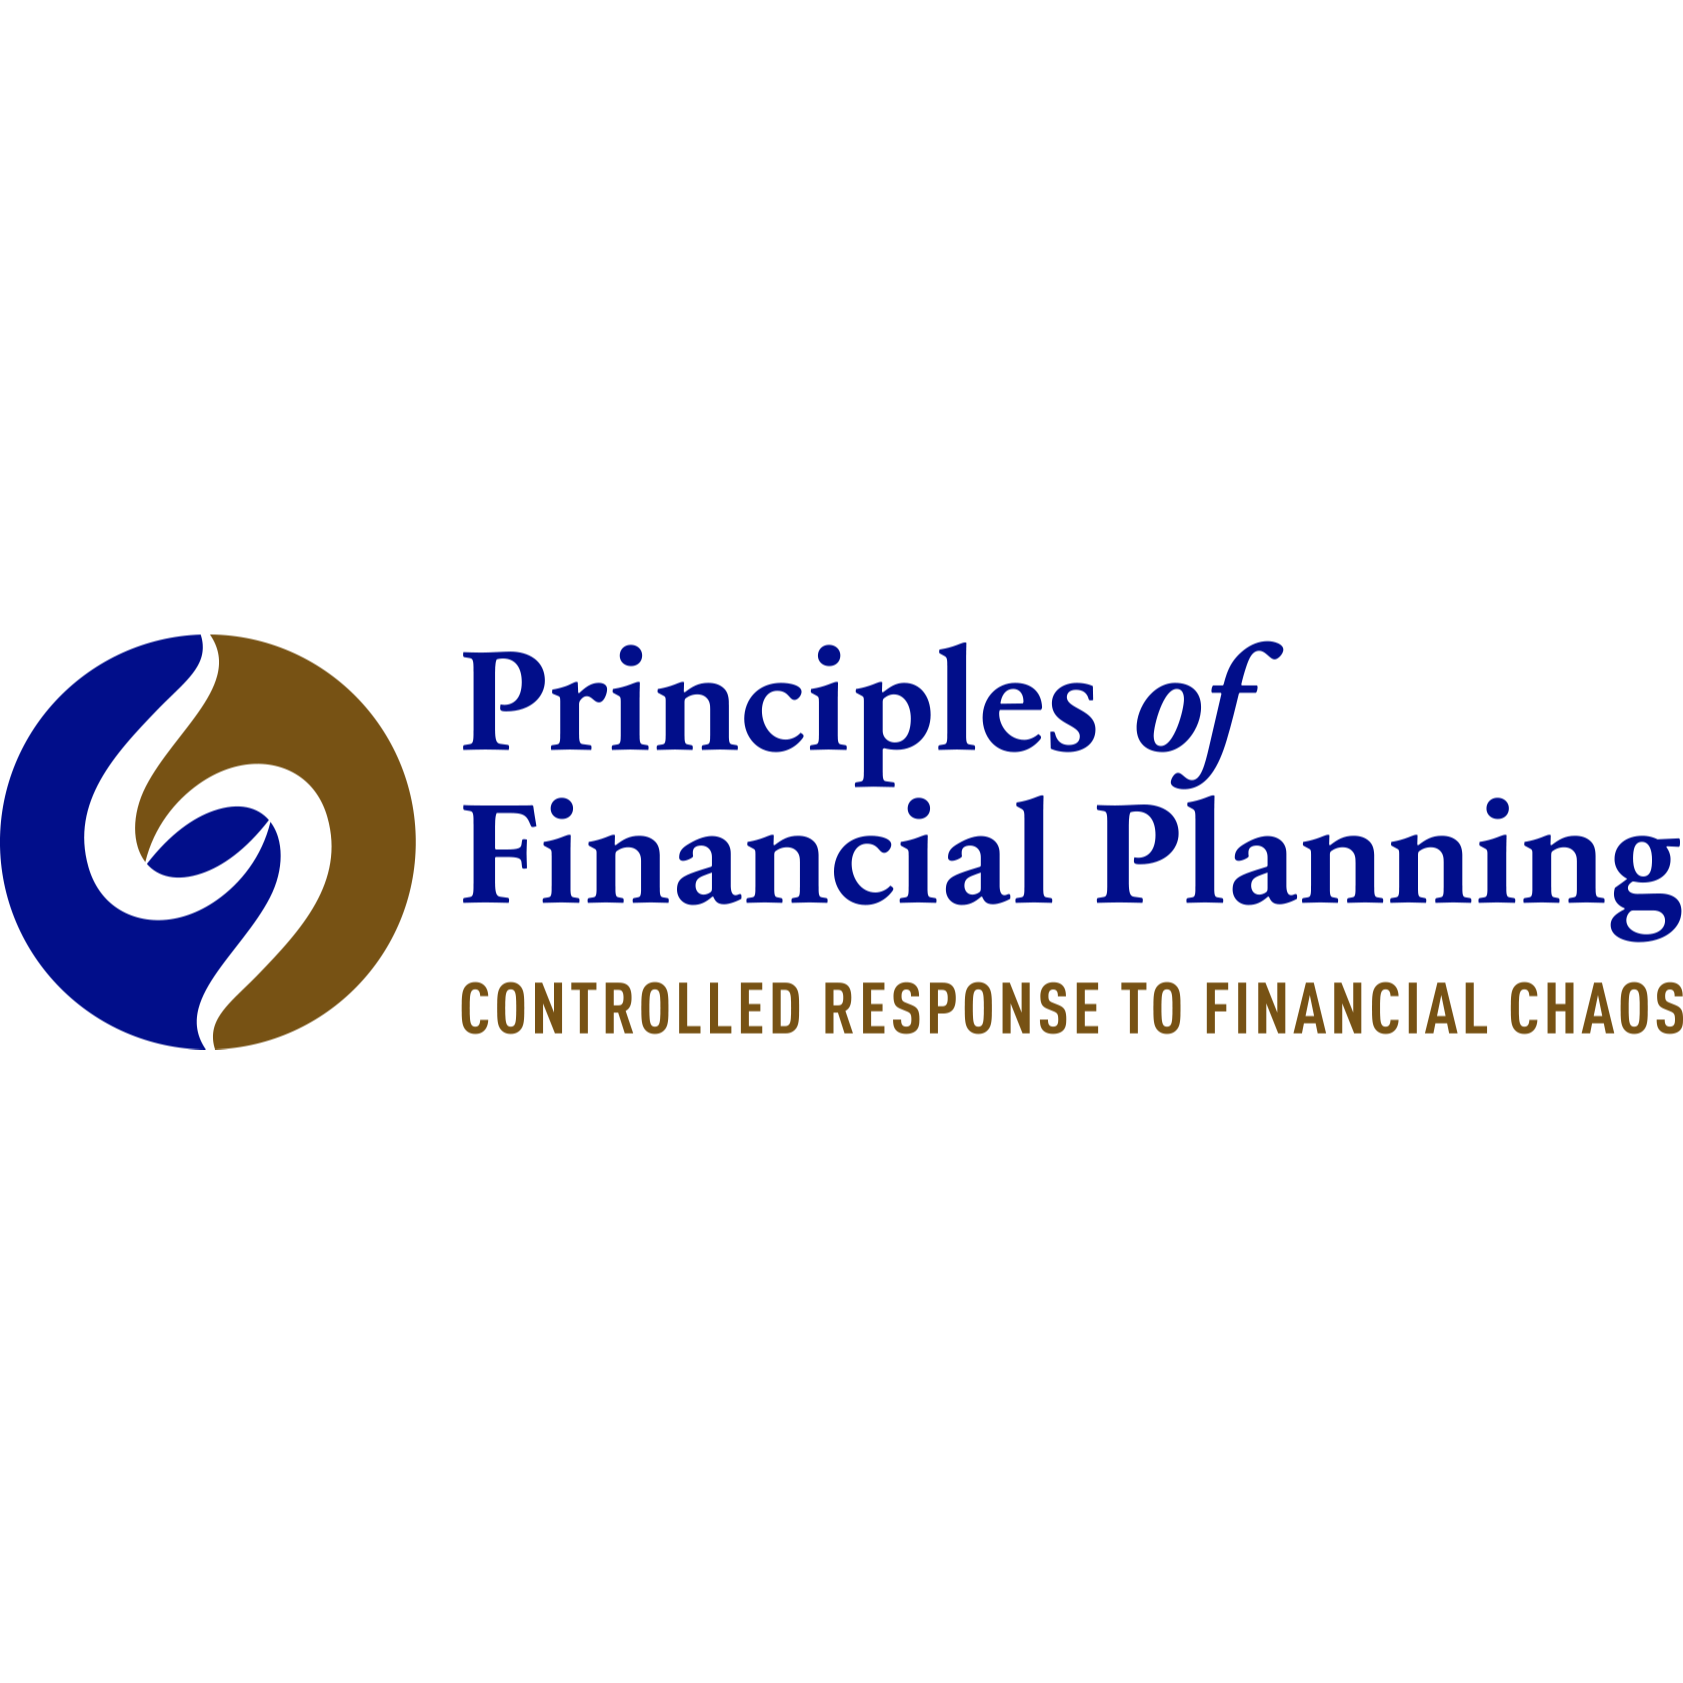 Principles of Financial Planning